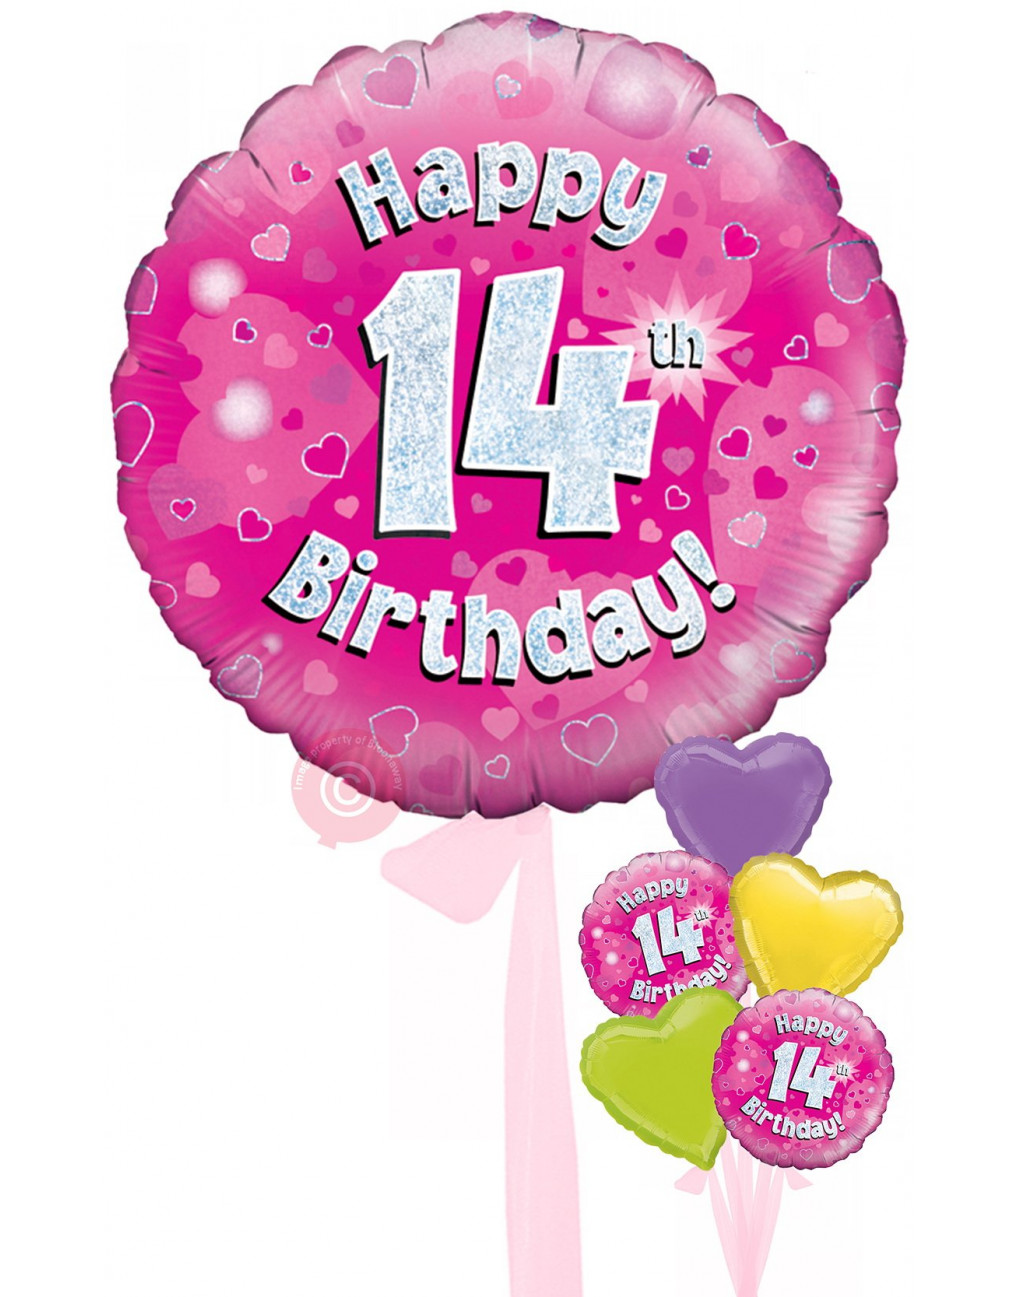 Personalised 14 Happy 14th Birthday Pink Holographic Balloons Delivered Inflated